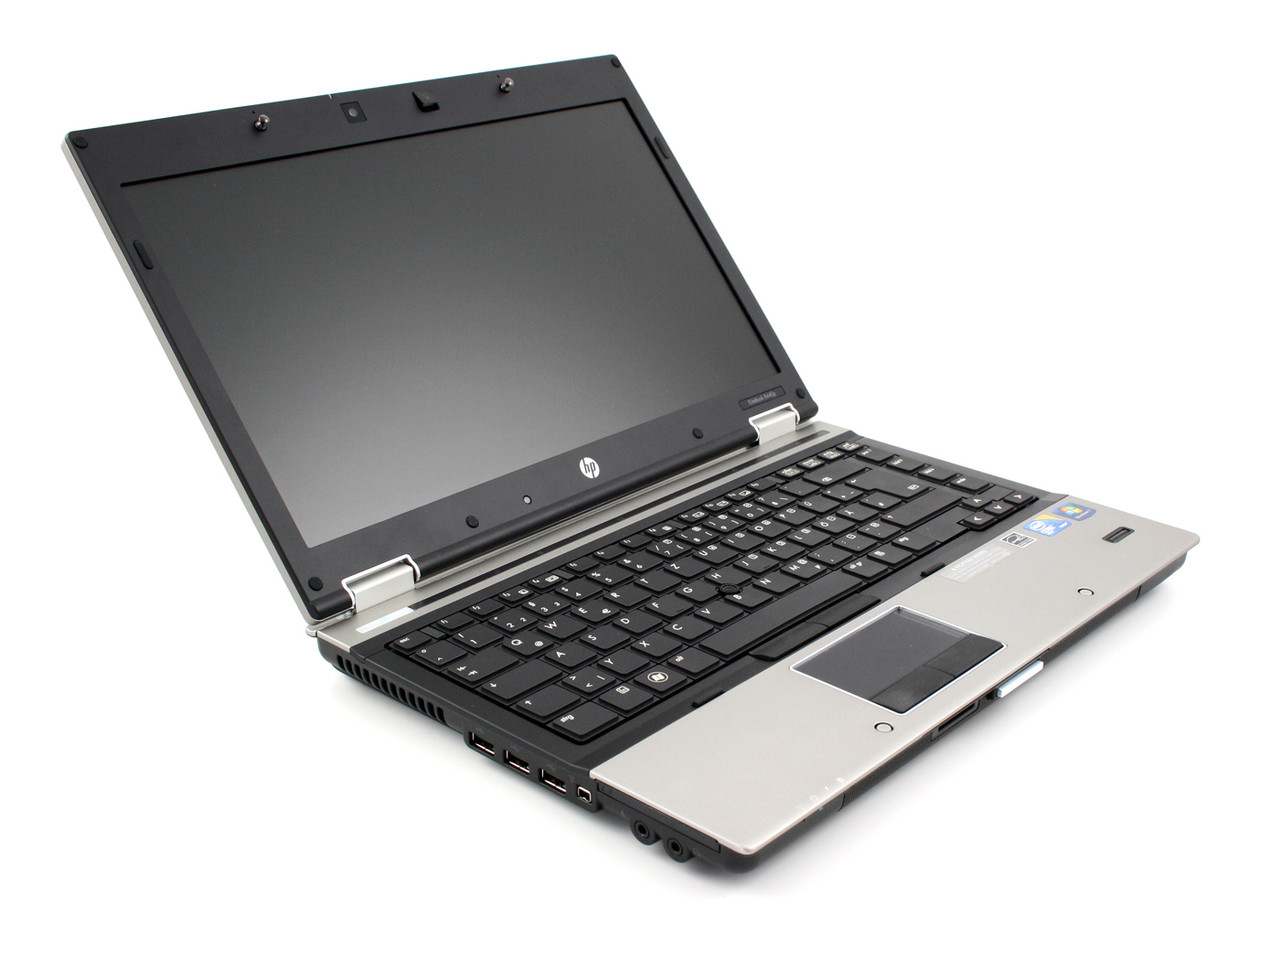 HP EliteBook 8440p - Side Display View 2